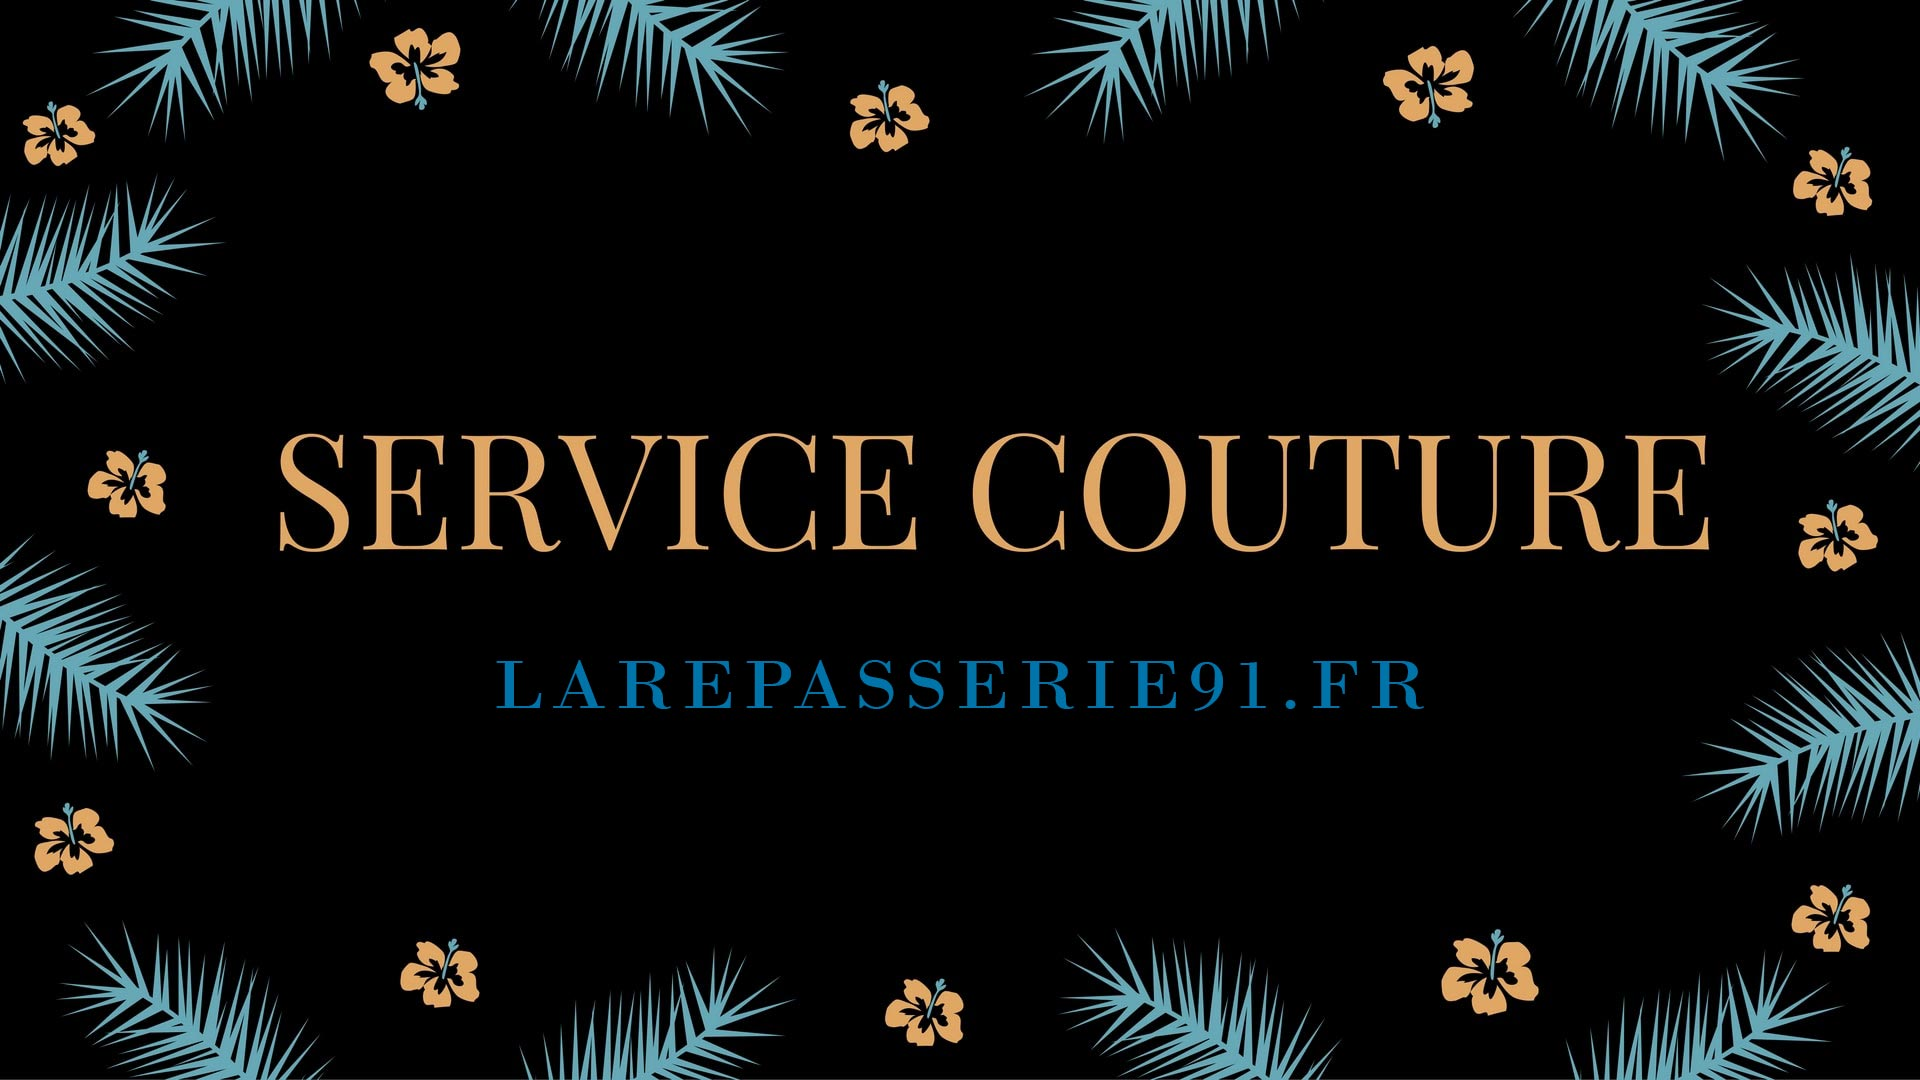 Service couture LAREPASSERIE91.FR